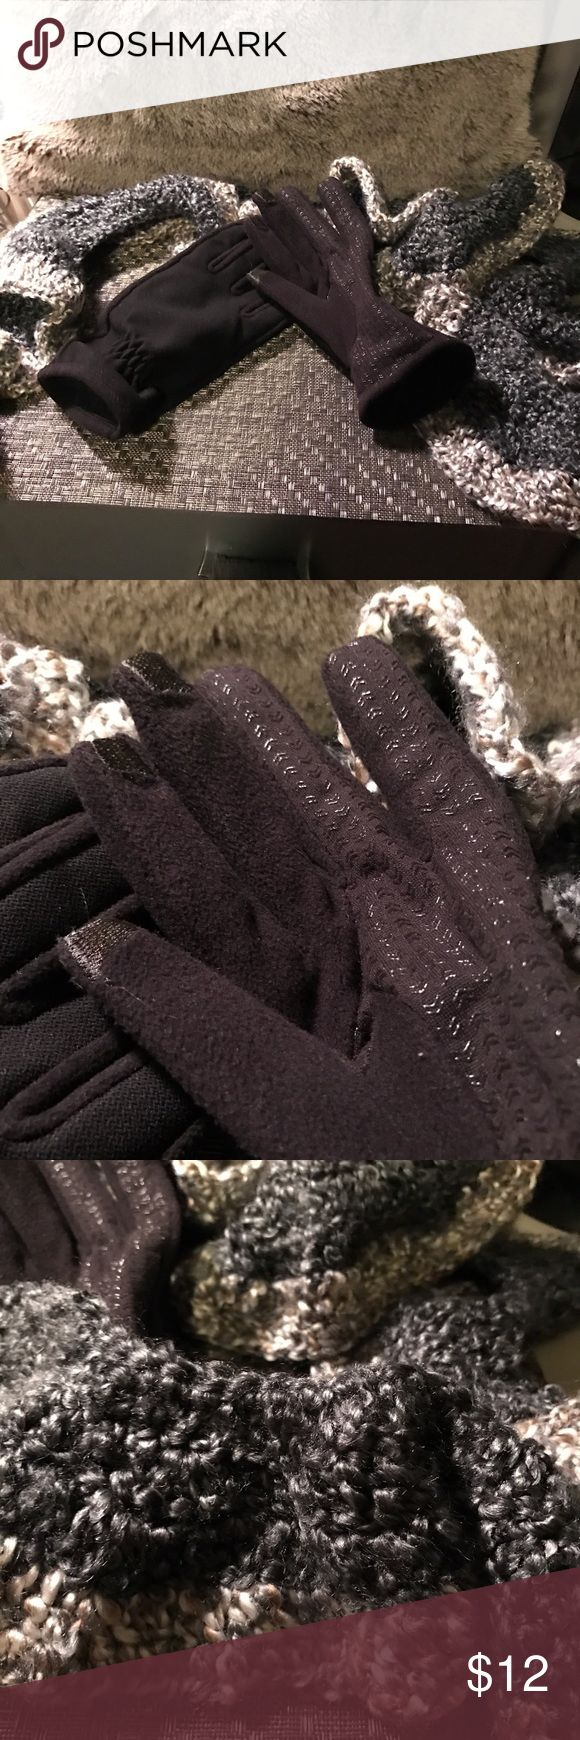 Isotoner smartphone gloves xl, homemade scarf Brand new womens Isotoner smart touch winter gloves, size xl, tag is cut out. Solid black with special finger material for using a smartphone.  New never worn handmade scarf.  Smoke free home Isotoner Accessories Gloves & Mittens